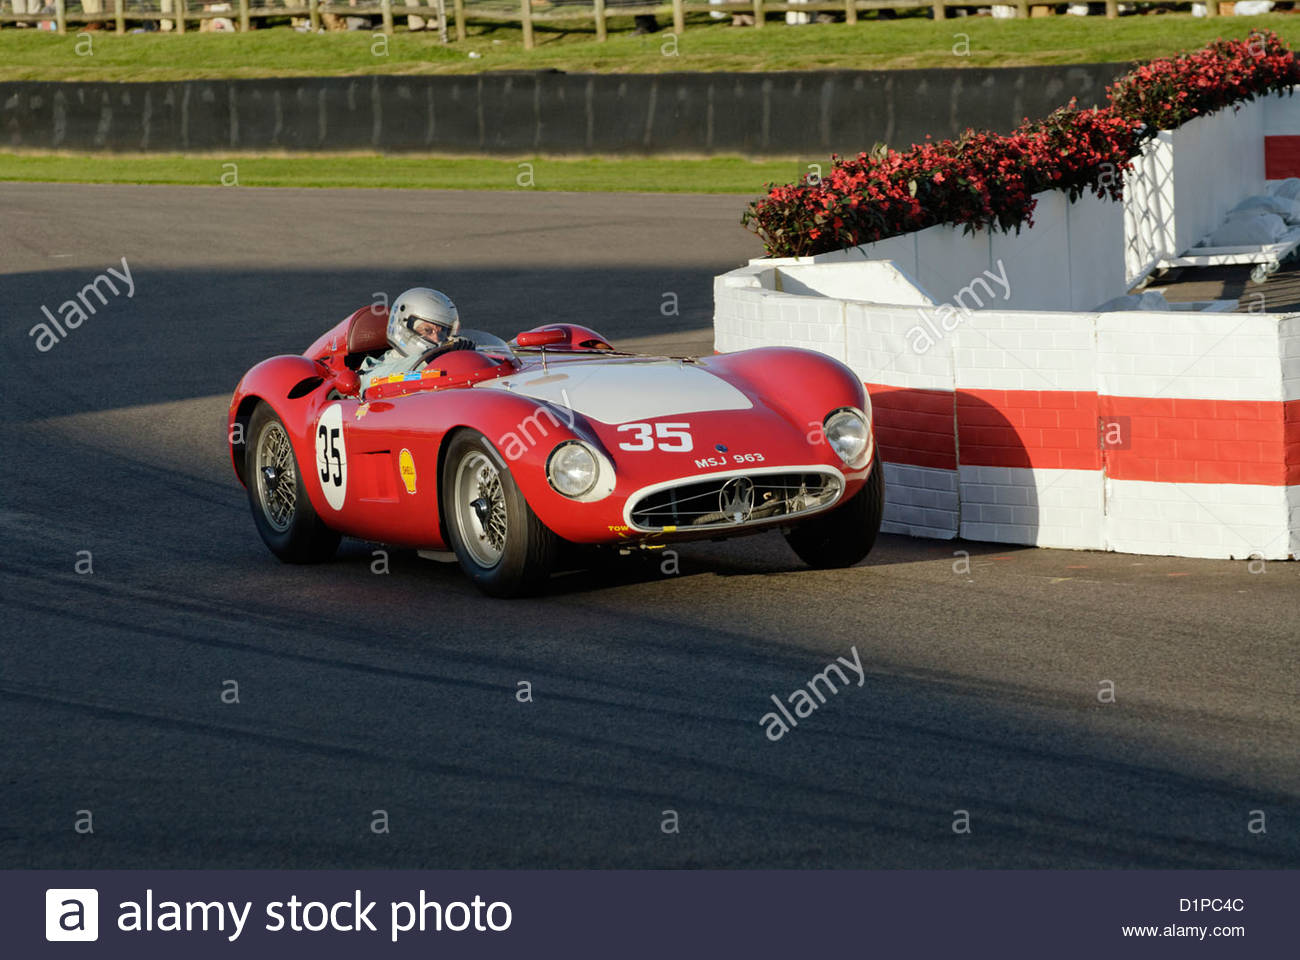 Maserati-Rennwagen auf dem Goodwood Revival Meeting 2012 Stockbild